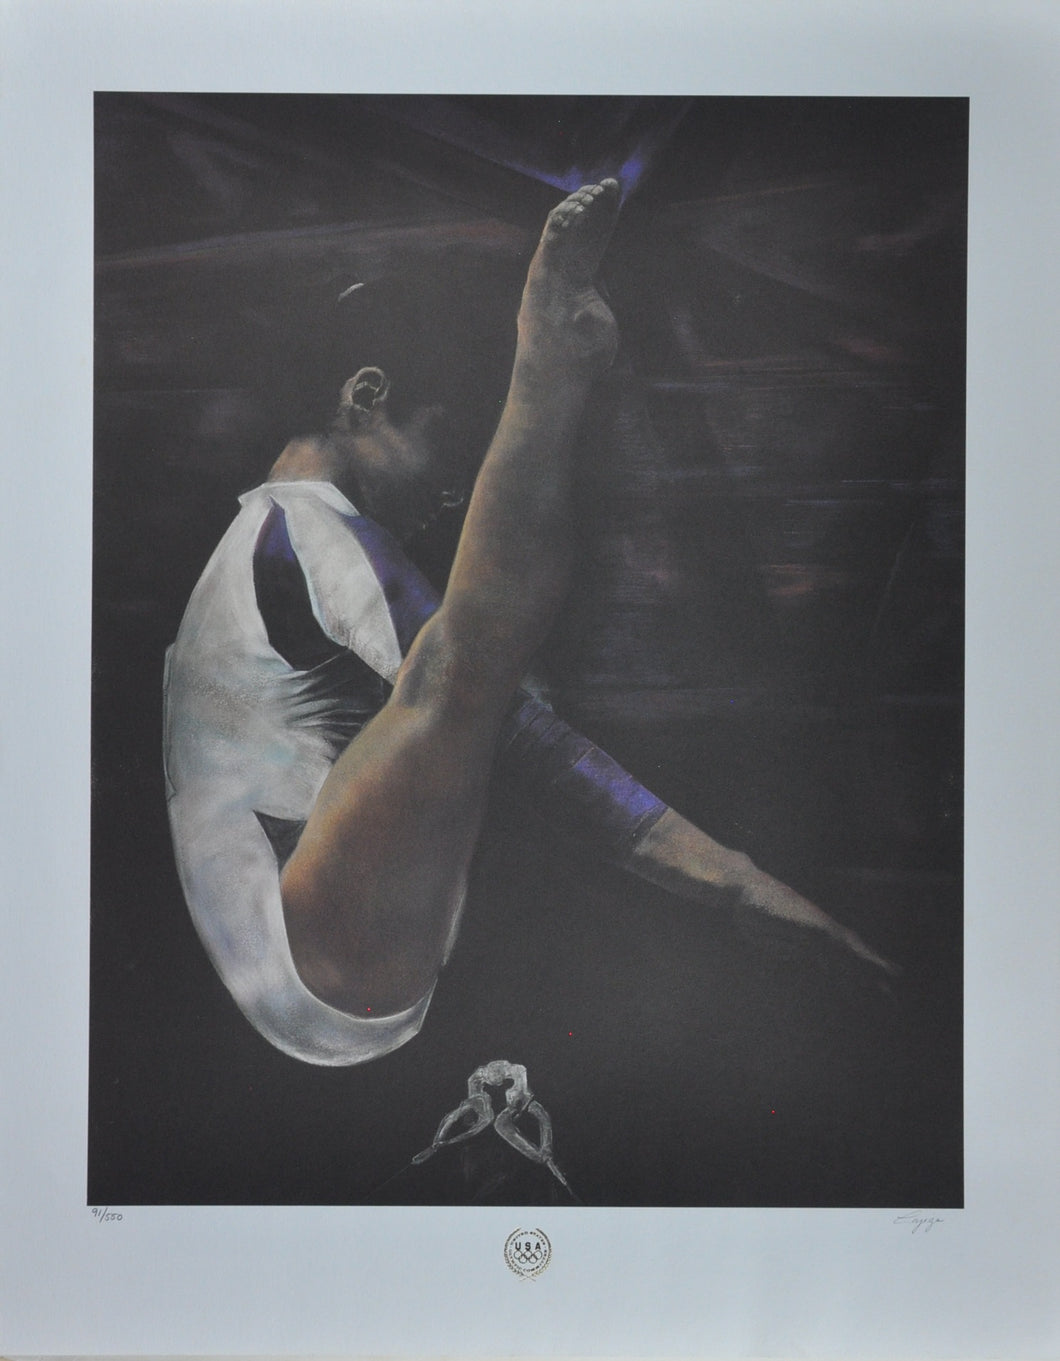 Cajega - Official Olympic Poster - 28 x 22 Signed and Numbered Limited Edition Poster